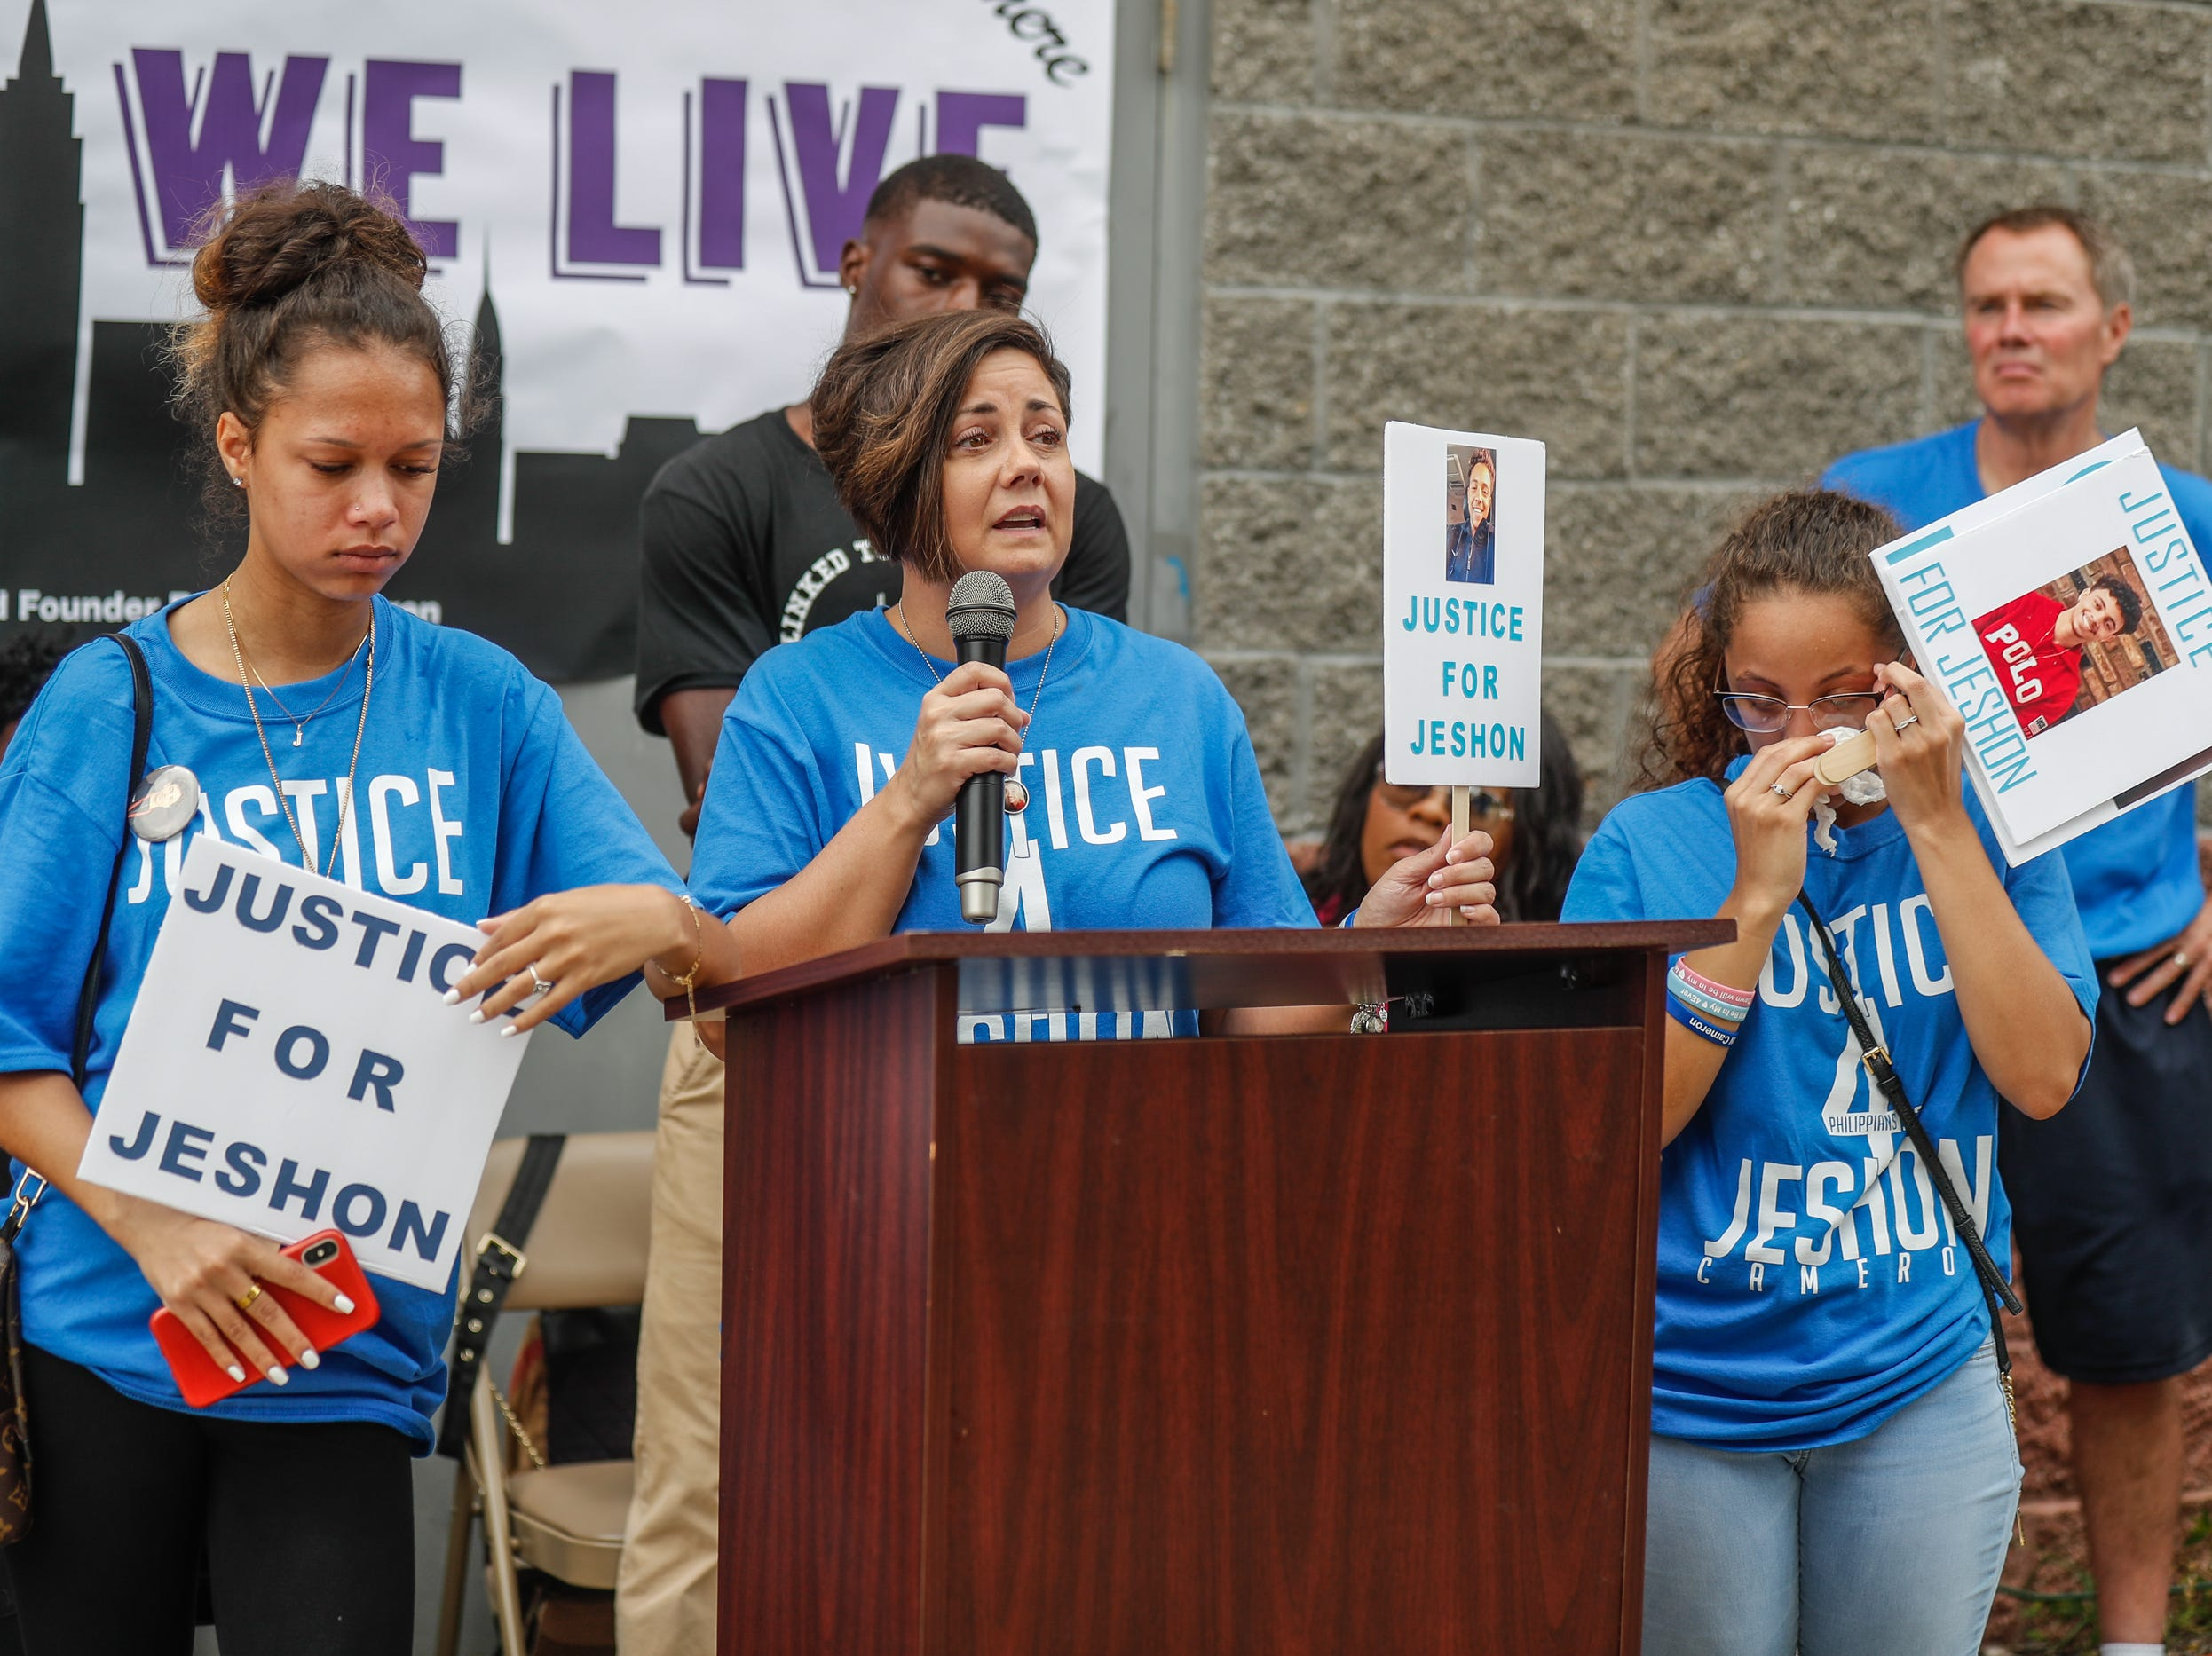 Left to right, Divina Leal, Jennifer Cameron and Amaia Cameron speak during the second annual Peace Walk and community day to end youth violence at Washington Park on Saturday, Aug. 11, 2018. 'We Live,' which stands for 'Linked To Intercept Violence' was started by students from Warren Central High School in Indianapolis.